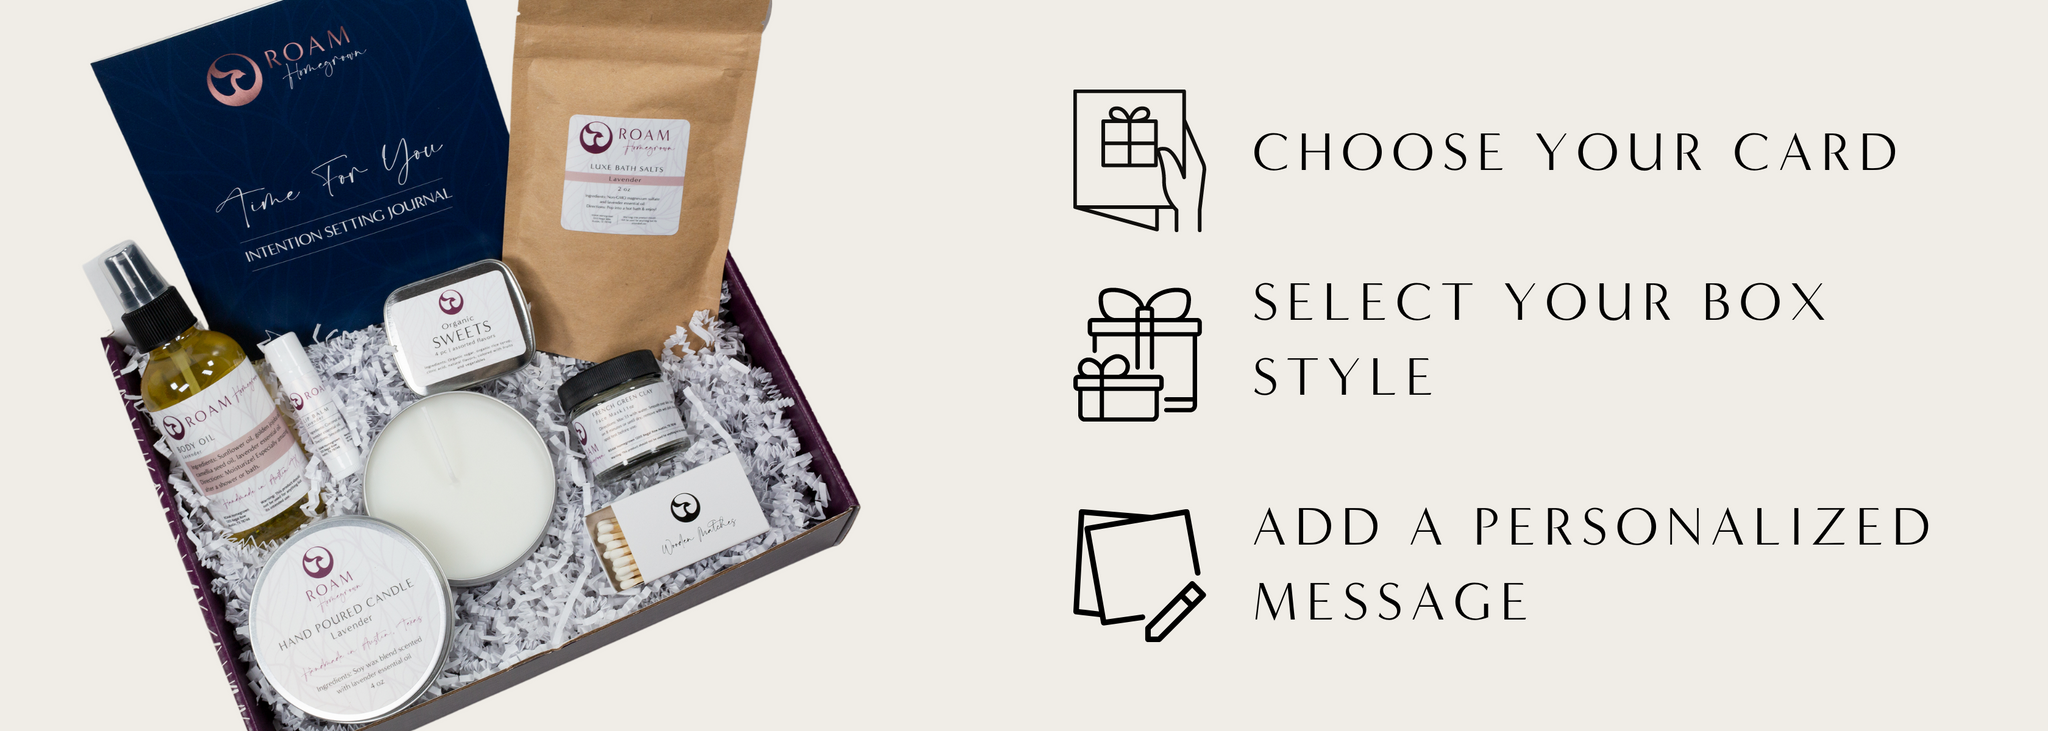 The best self-care gift sets for her delivered with relaxation essentials, handmade with organic, natural products. Includes personalized greeting for new mom, thank you, congratulations, holiday and Christmas.